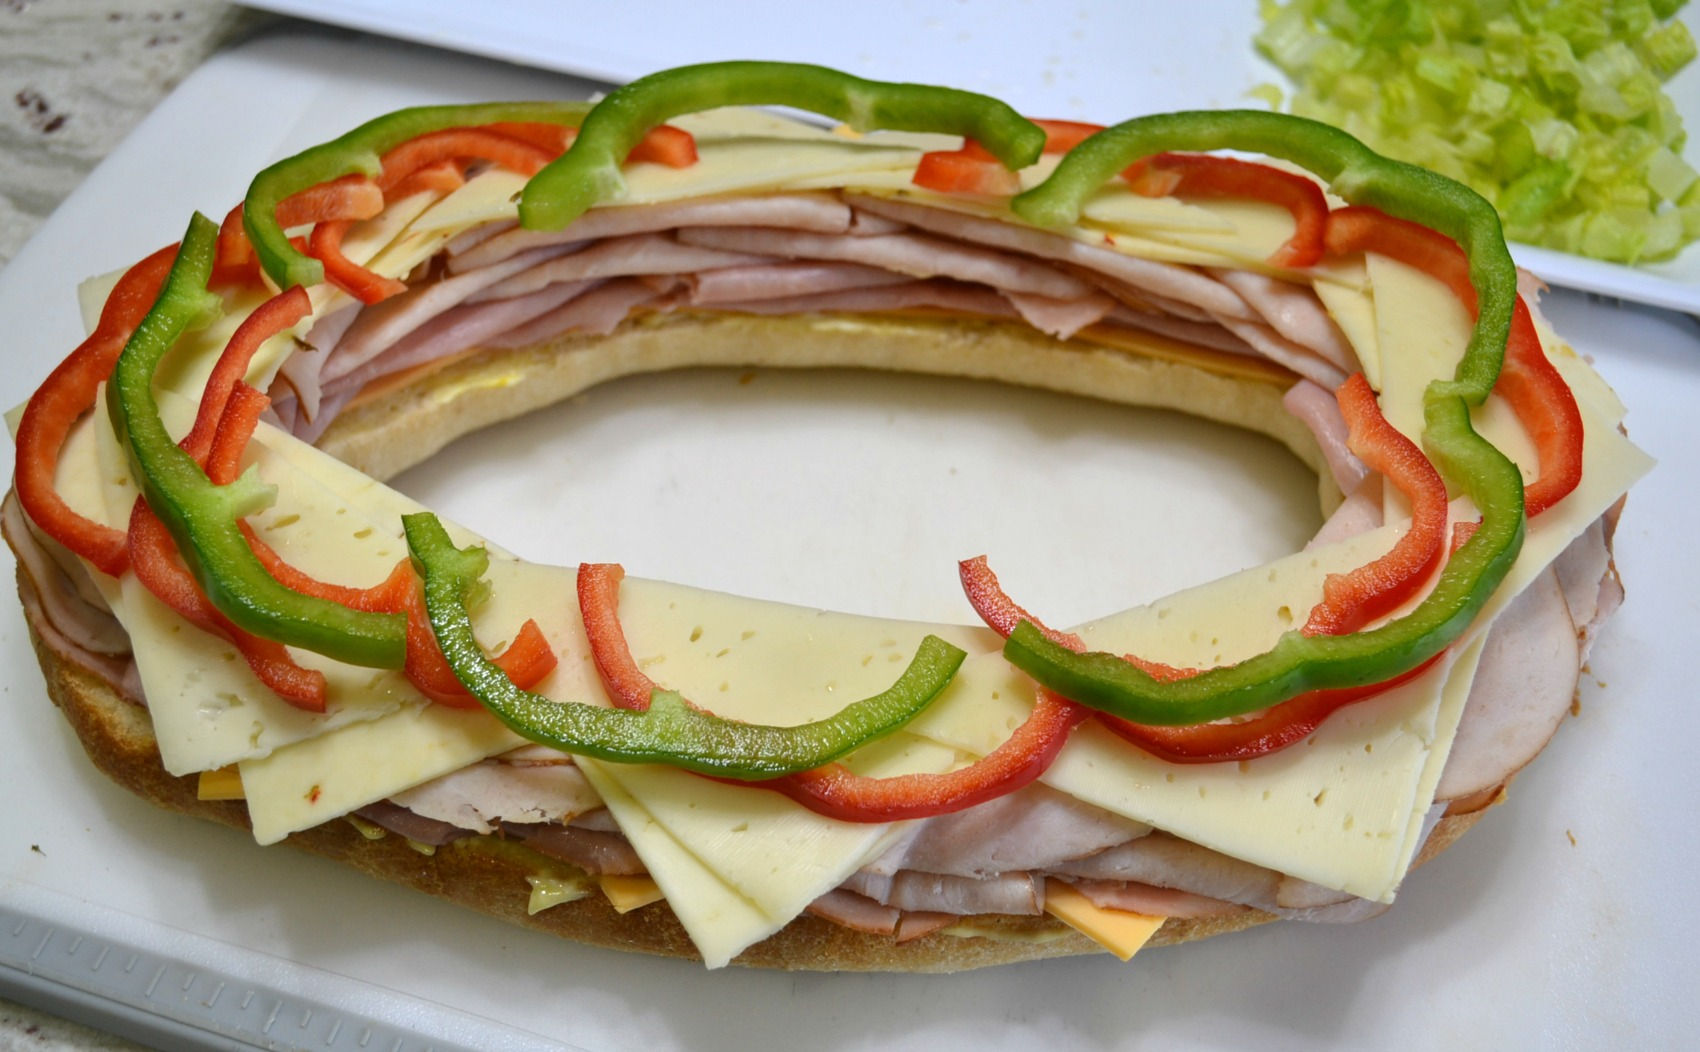 This Sensational Stadium Sandwich is packed with meat, cheese, and veggies. Perfect to serve at any tailgate party